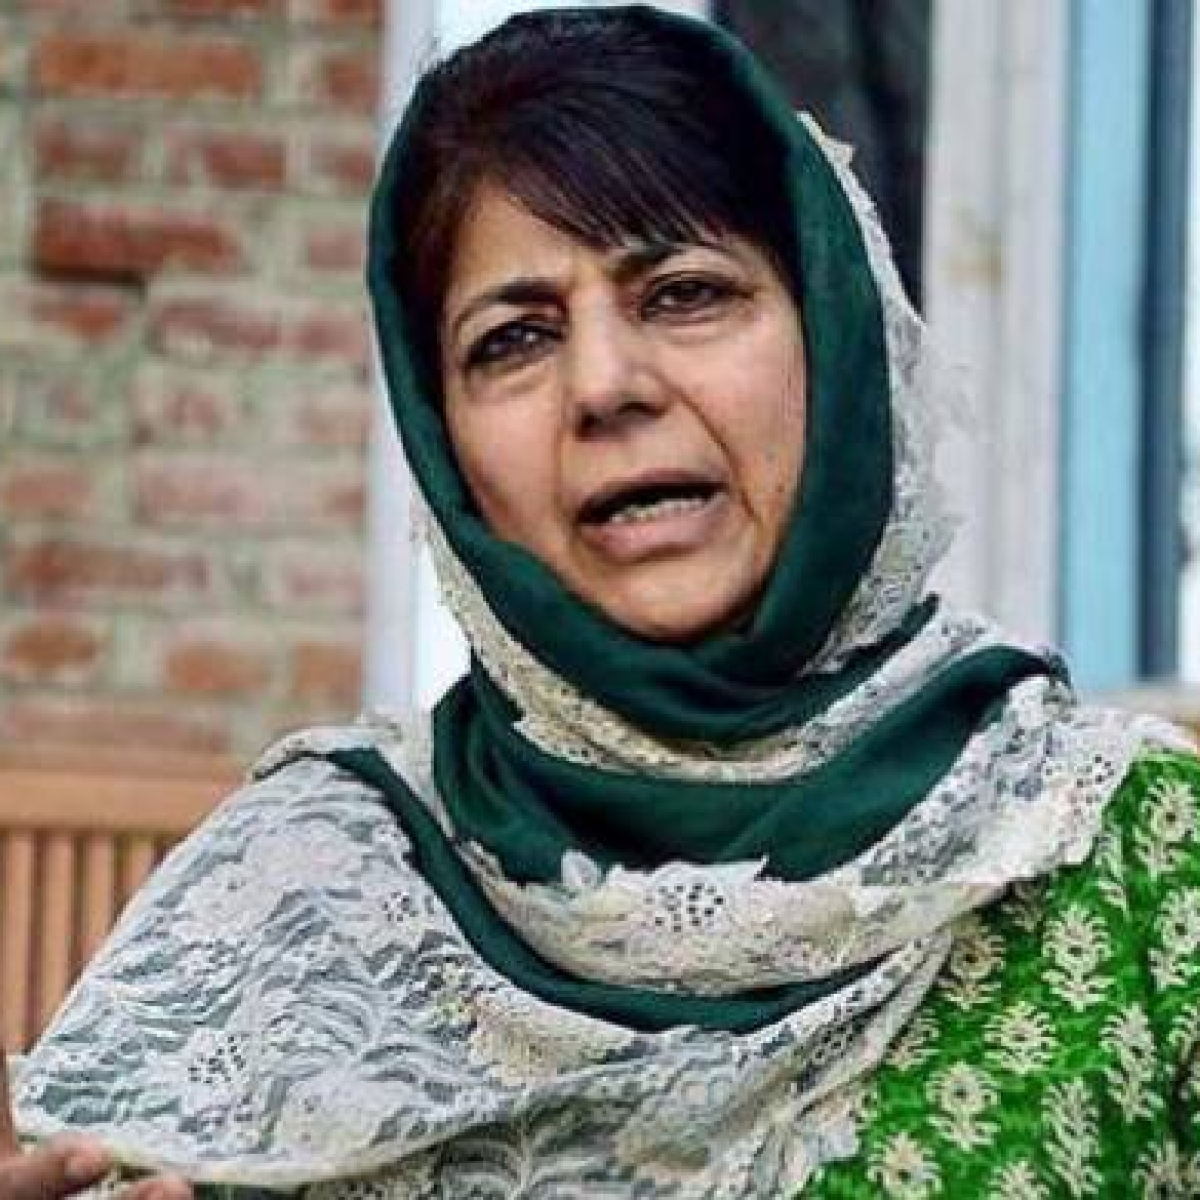 'Expressing solidarity with Palestine is no crime': Mehbooba Mufti questions arrest of people for holding anti-Israel protest